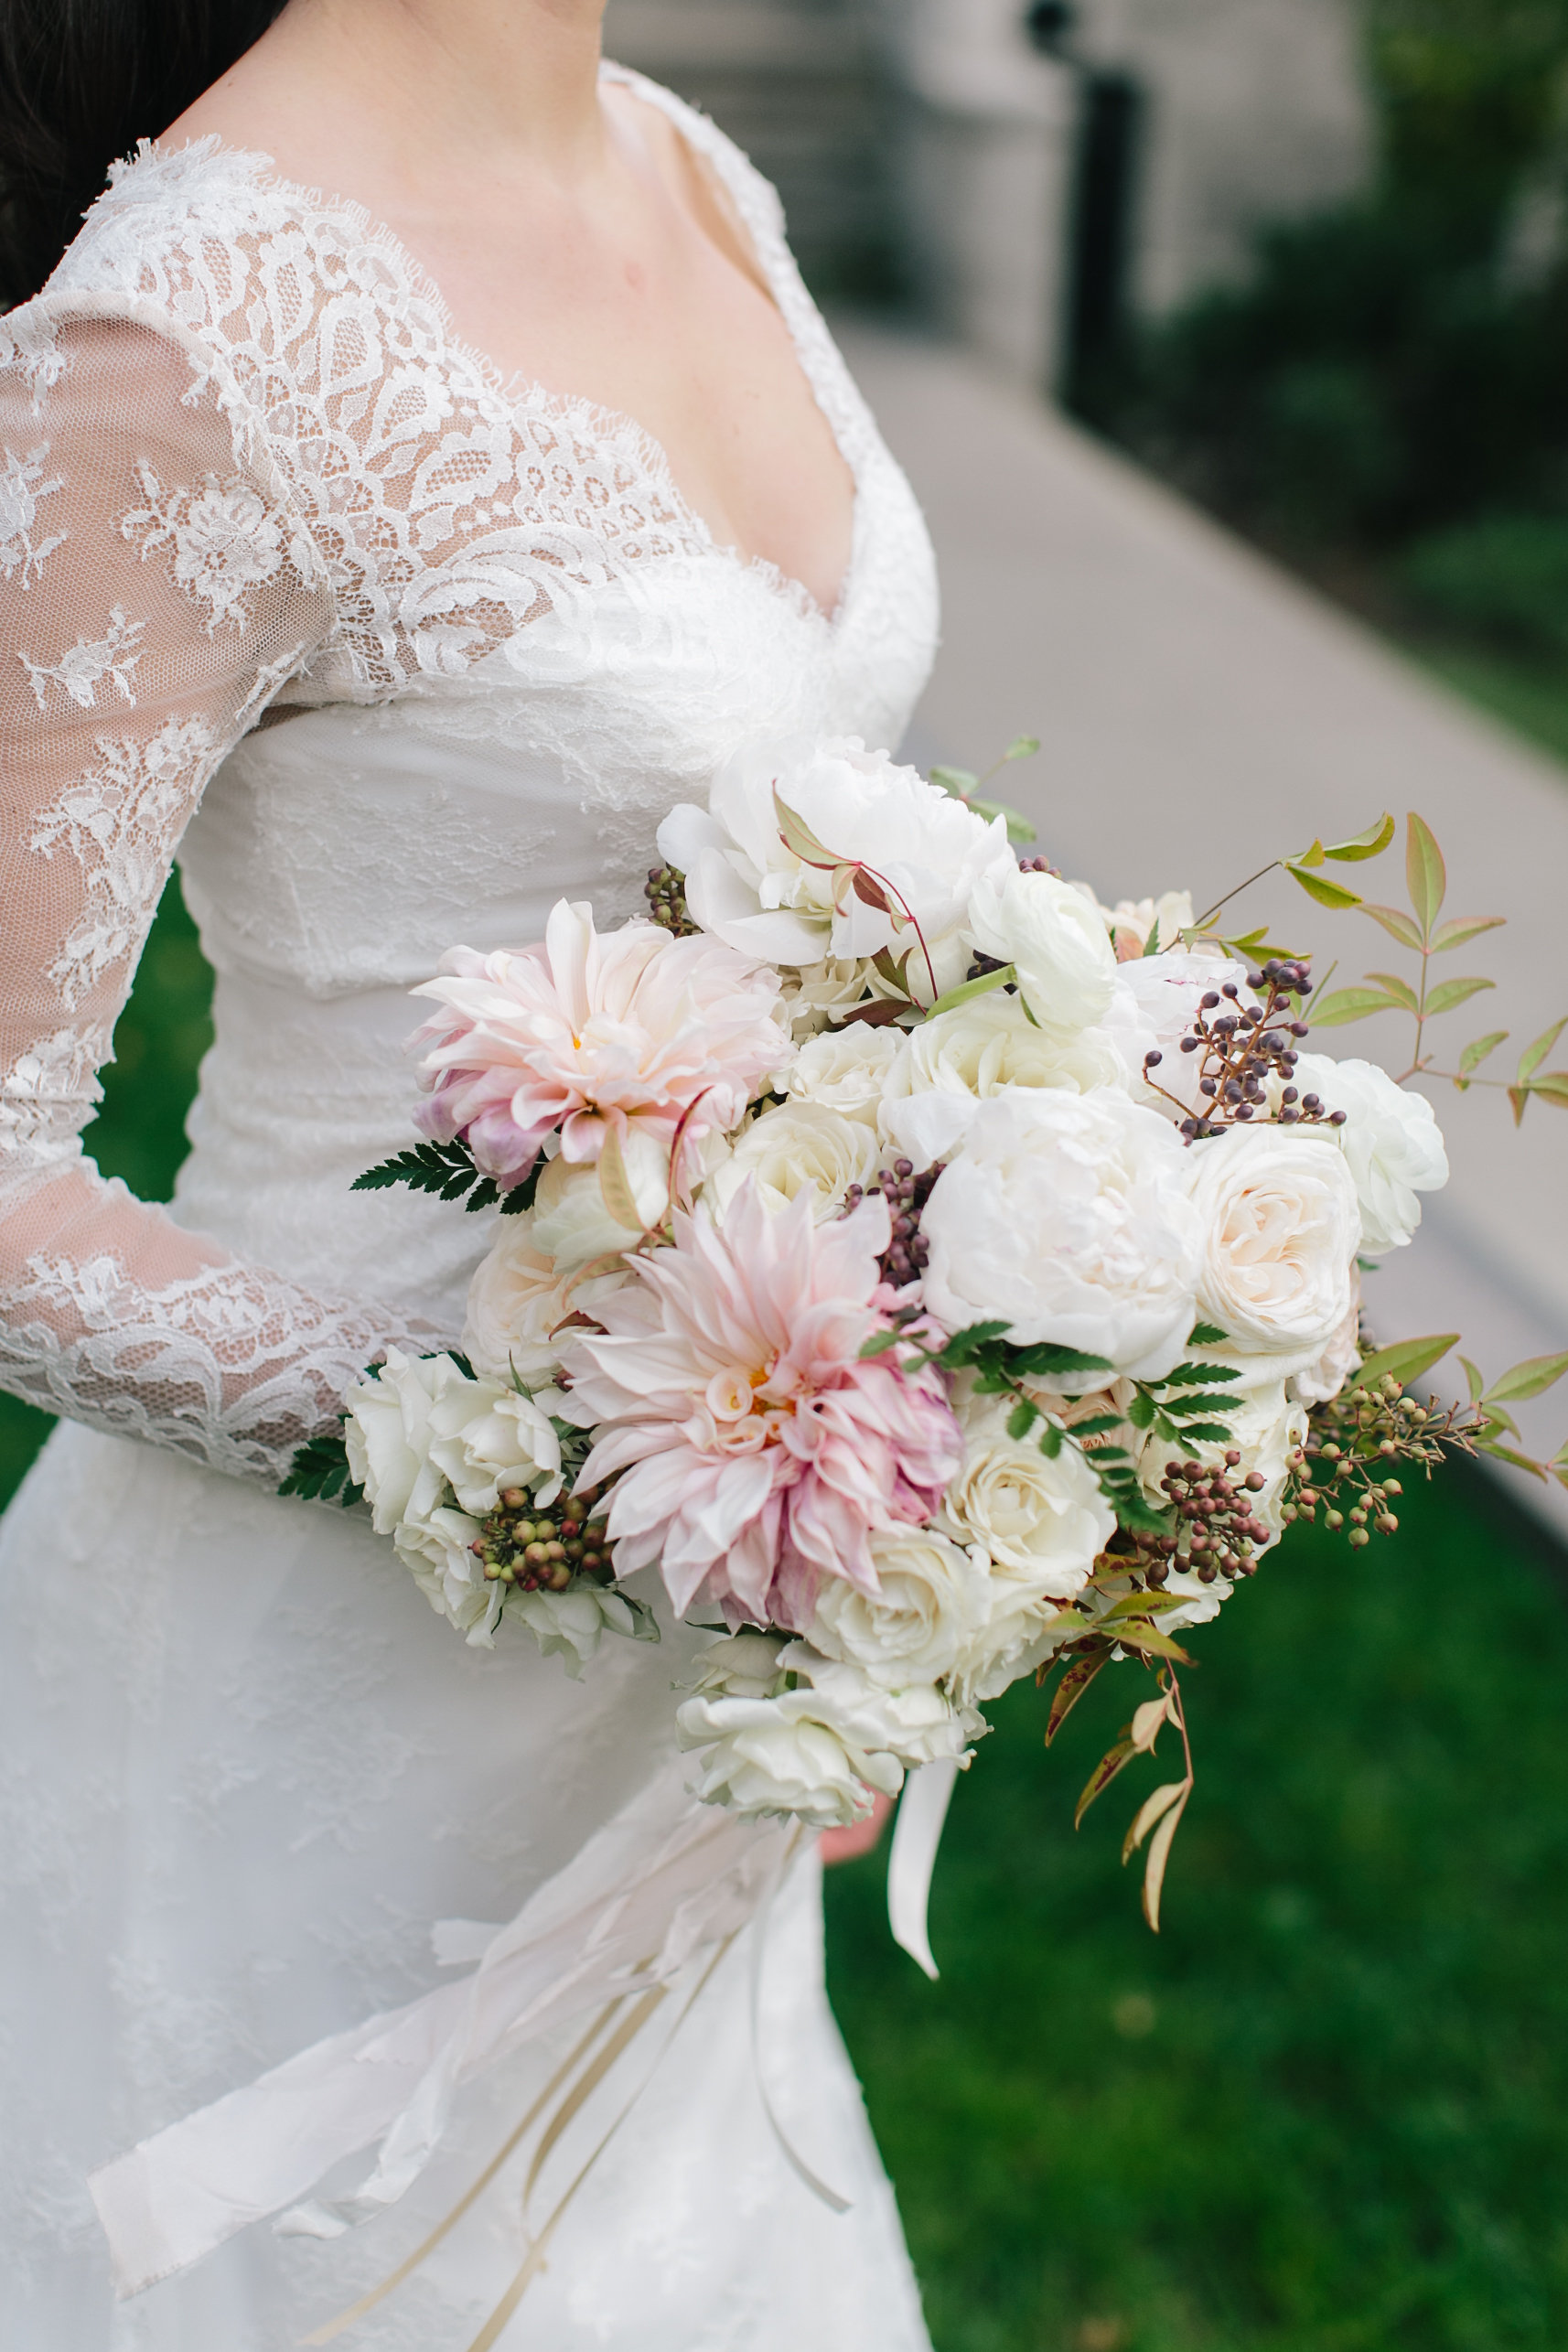 Romantic wedding bouquet with cafe au lait dahlias and peonies, designed by Fleur Inc.  Wedding at the Langham Hotel in Chicago, photographed by Clary Pfeiffer Photography.